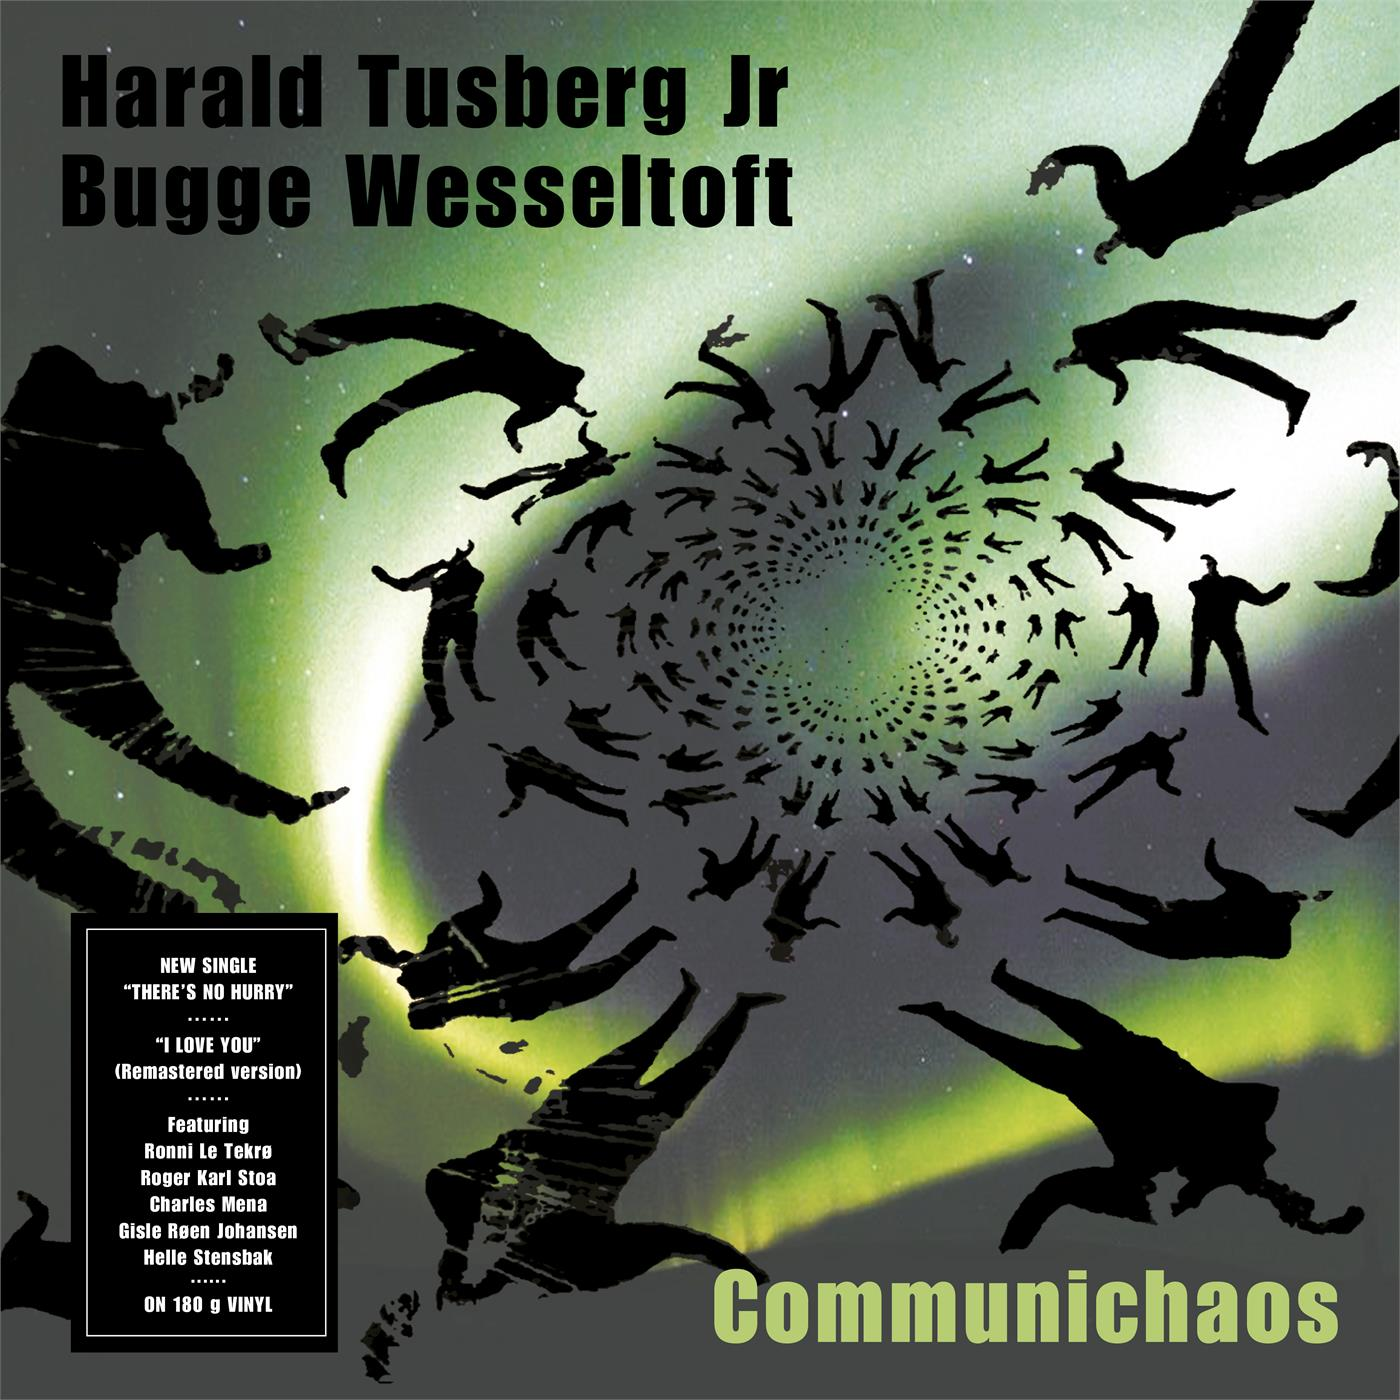 S2LP028 S2  Harald Tusberg Jr. & Bugge Wesseltoft Communichaos (LP)